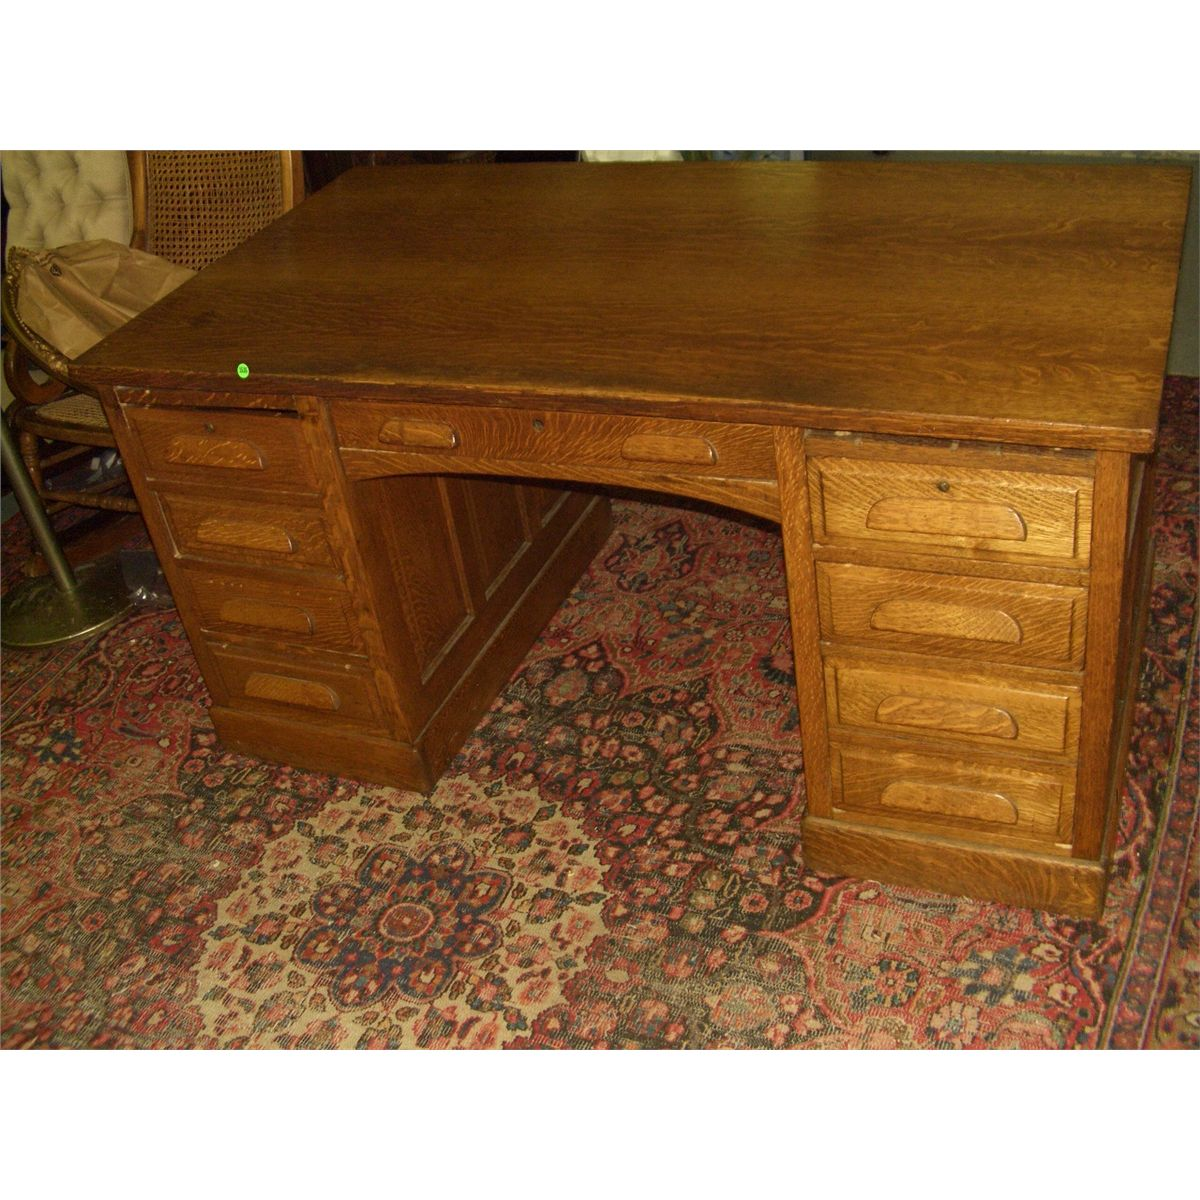 Outstanding American Oak Arts Crafts Double Bank Desk Professionally Refinished Ssr Download Free Architecture Designs Scobabritishbridgeorg